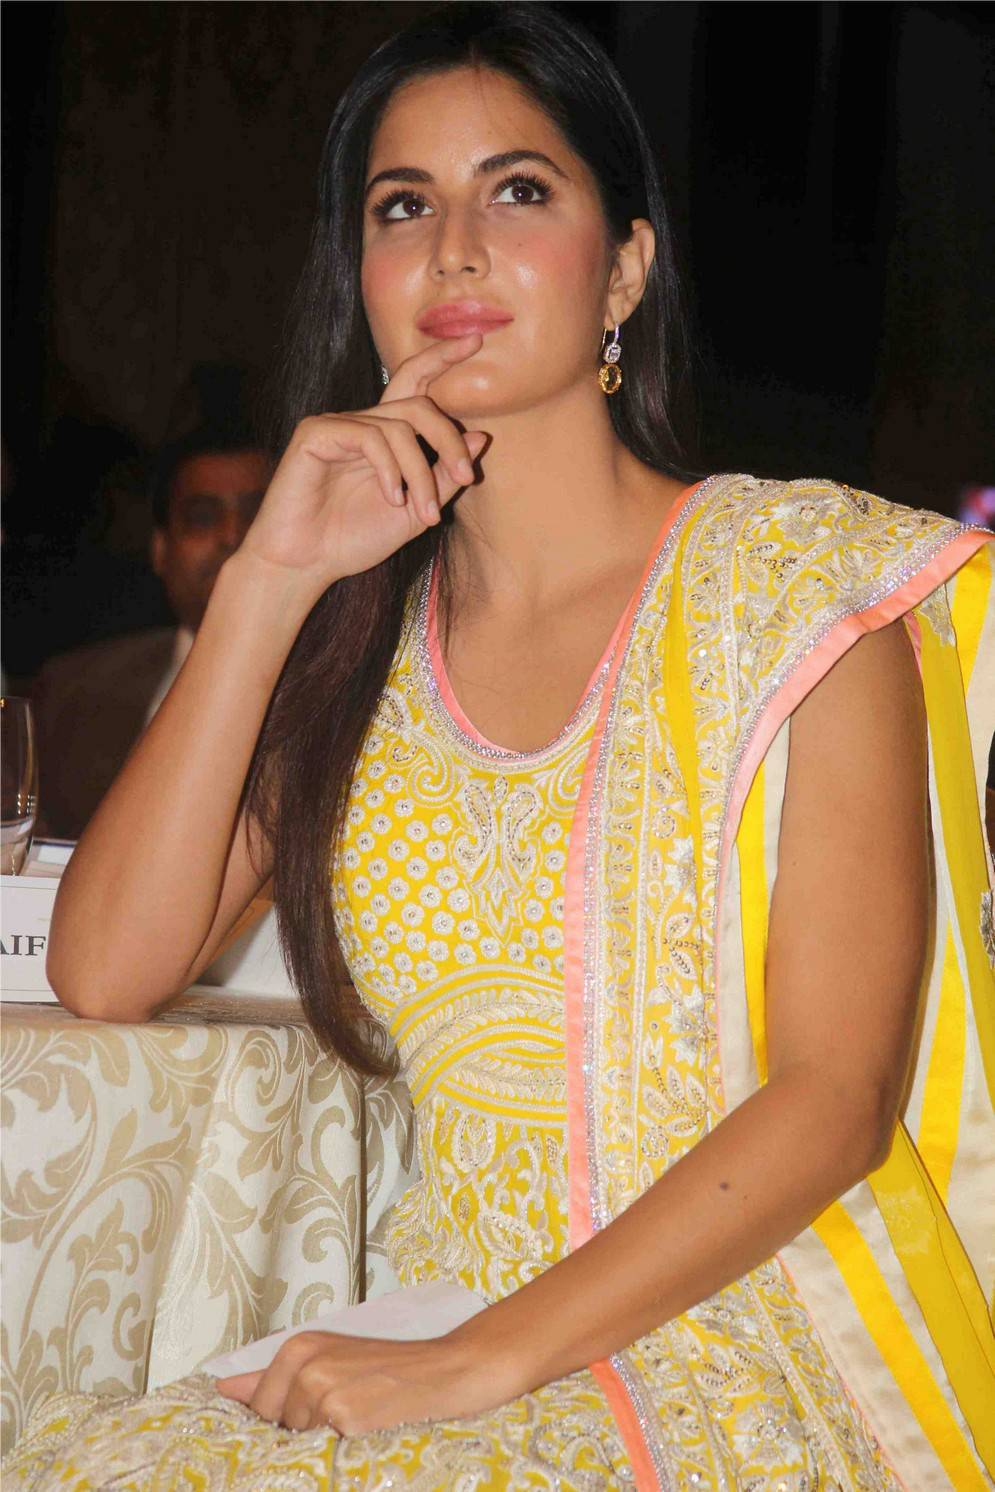 Katrina Kaif In Yellow Dress At WeUnite conference